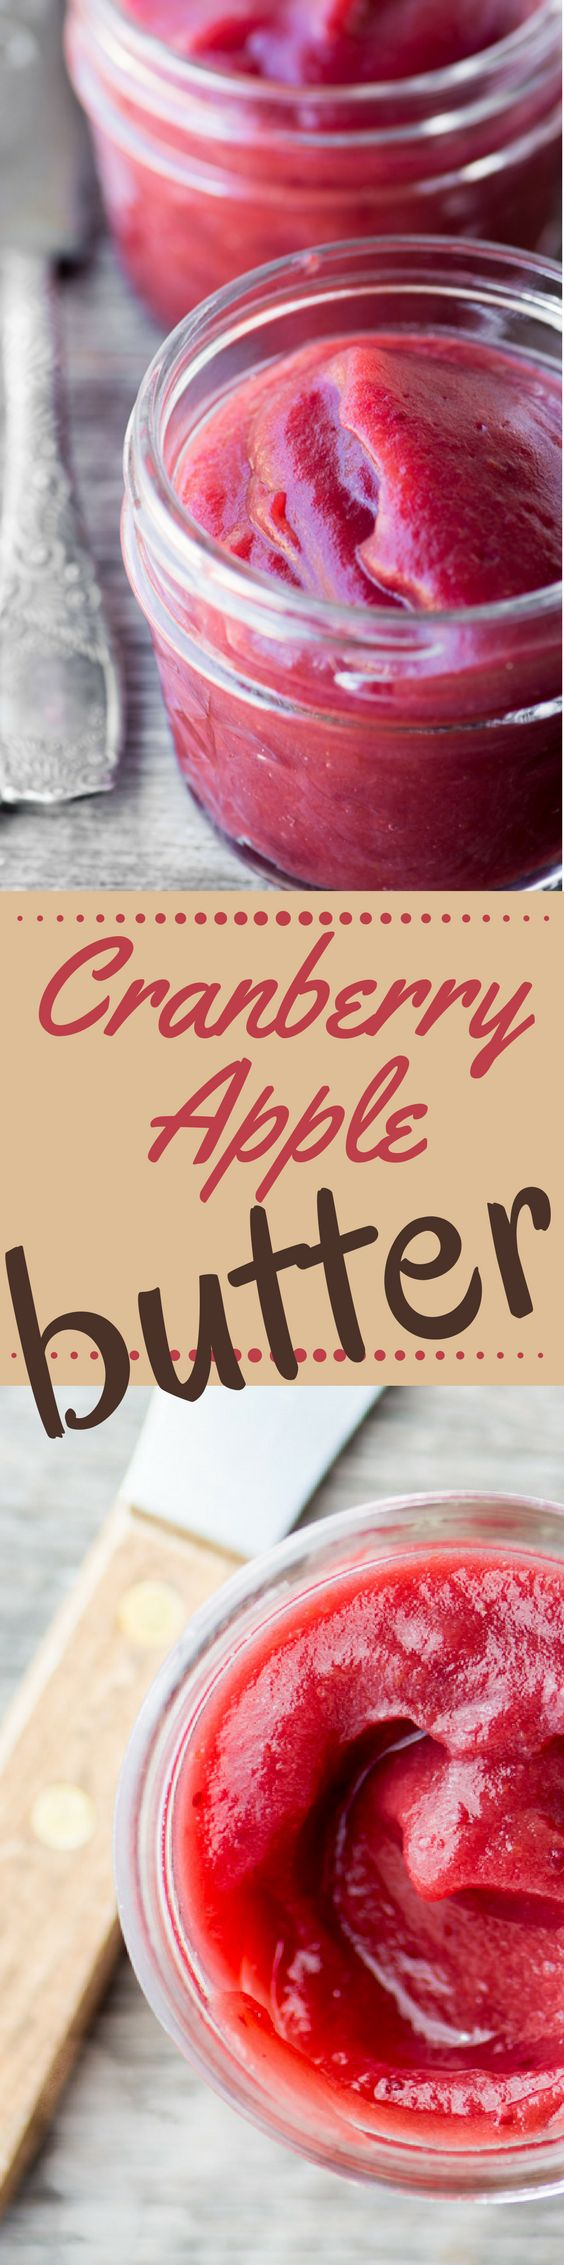 This healthy, no-sugar Cranberry Apple Butter is a pure, gorgeous fruit spread that perks up toast, biscuits, muffins, and scones — you can even mix it into yogurt, or bake with it. Even better, you m (Apple Butter)